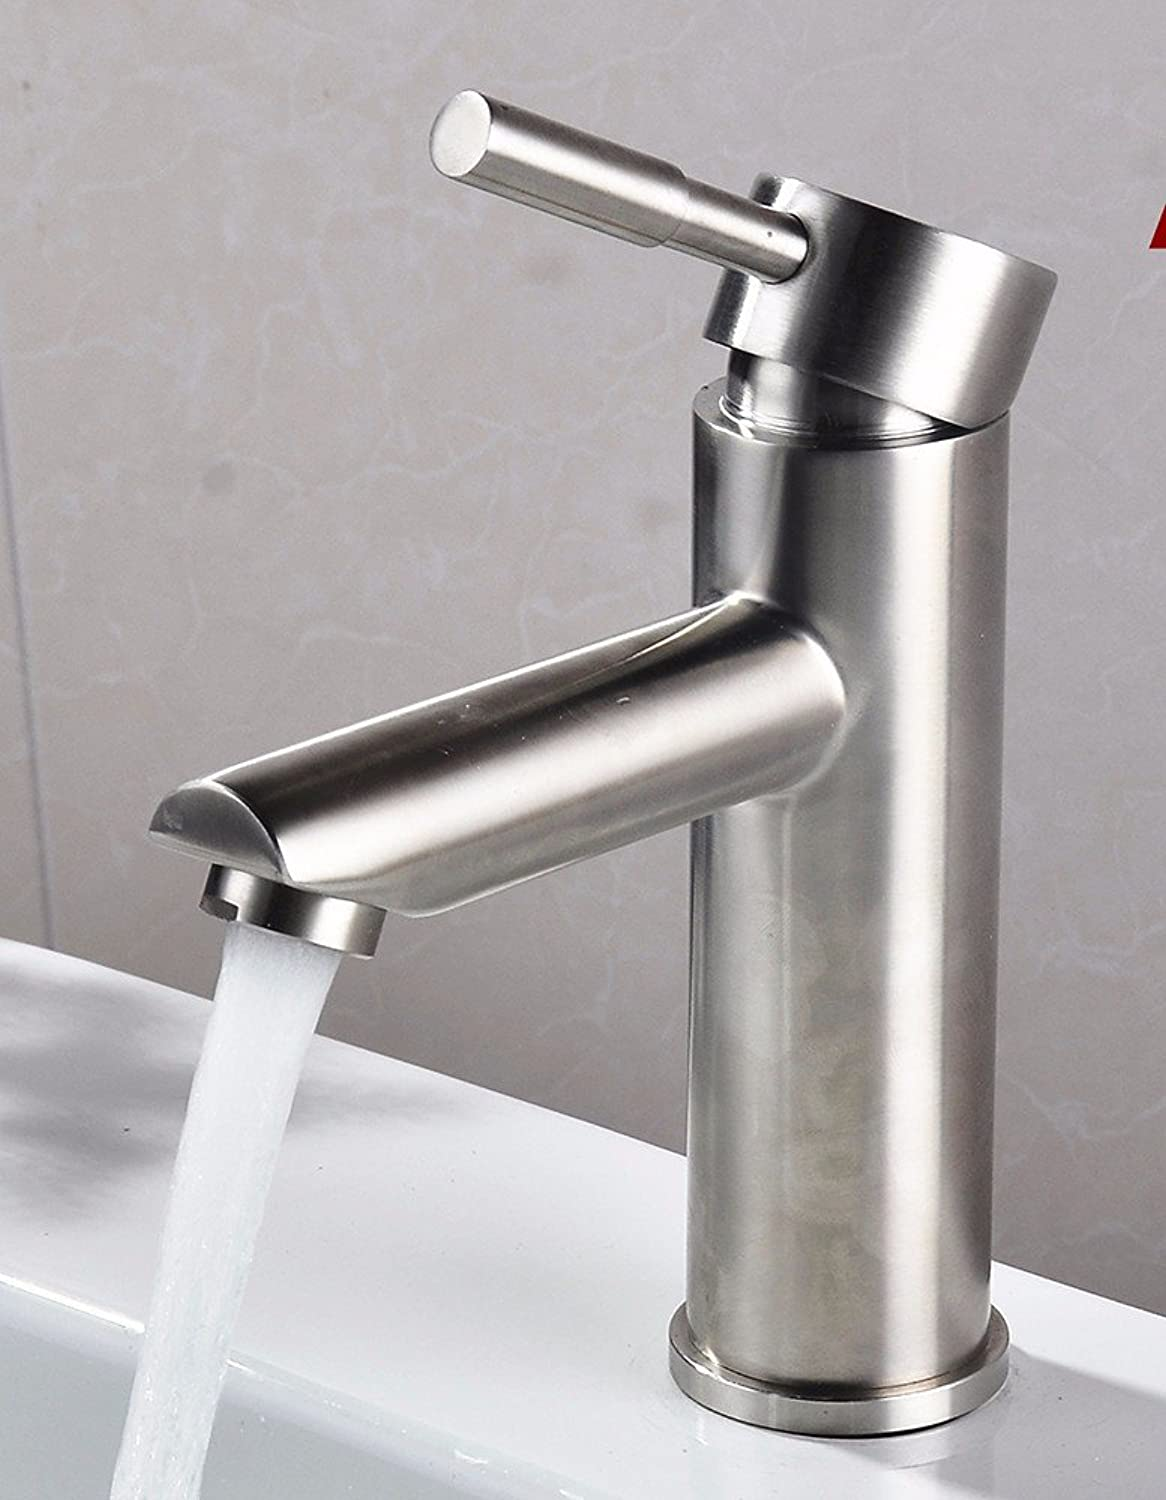 AWXJX Stainless Steel hot and cold Single Single Hole washing the face water taps